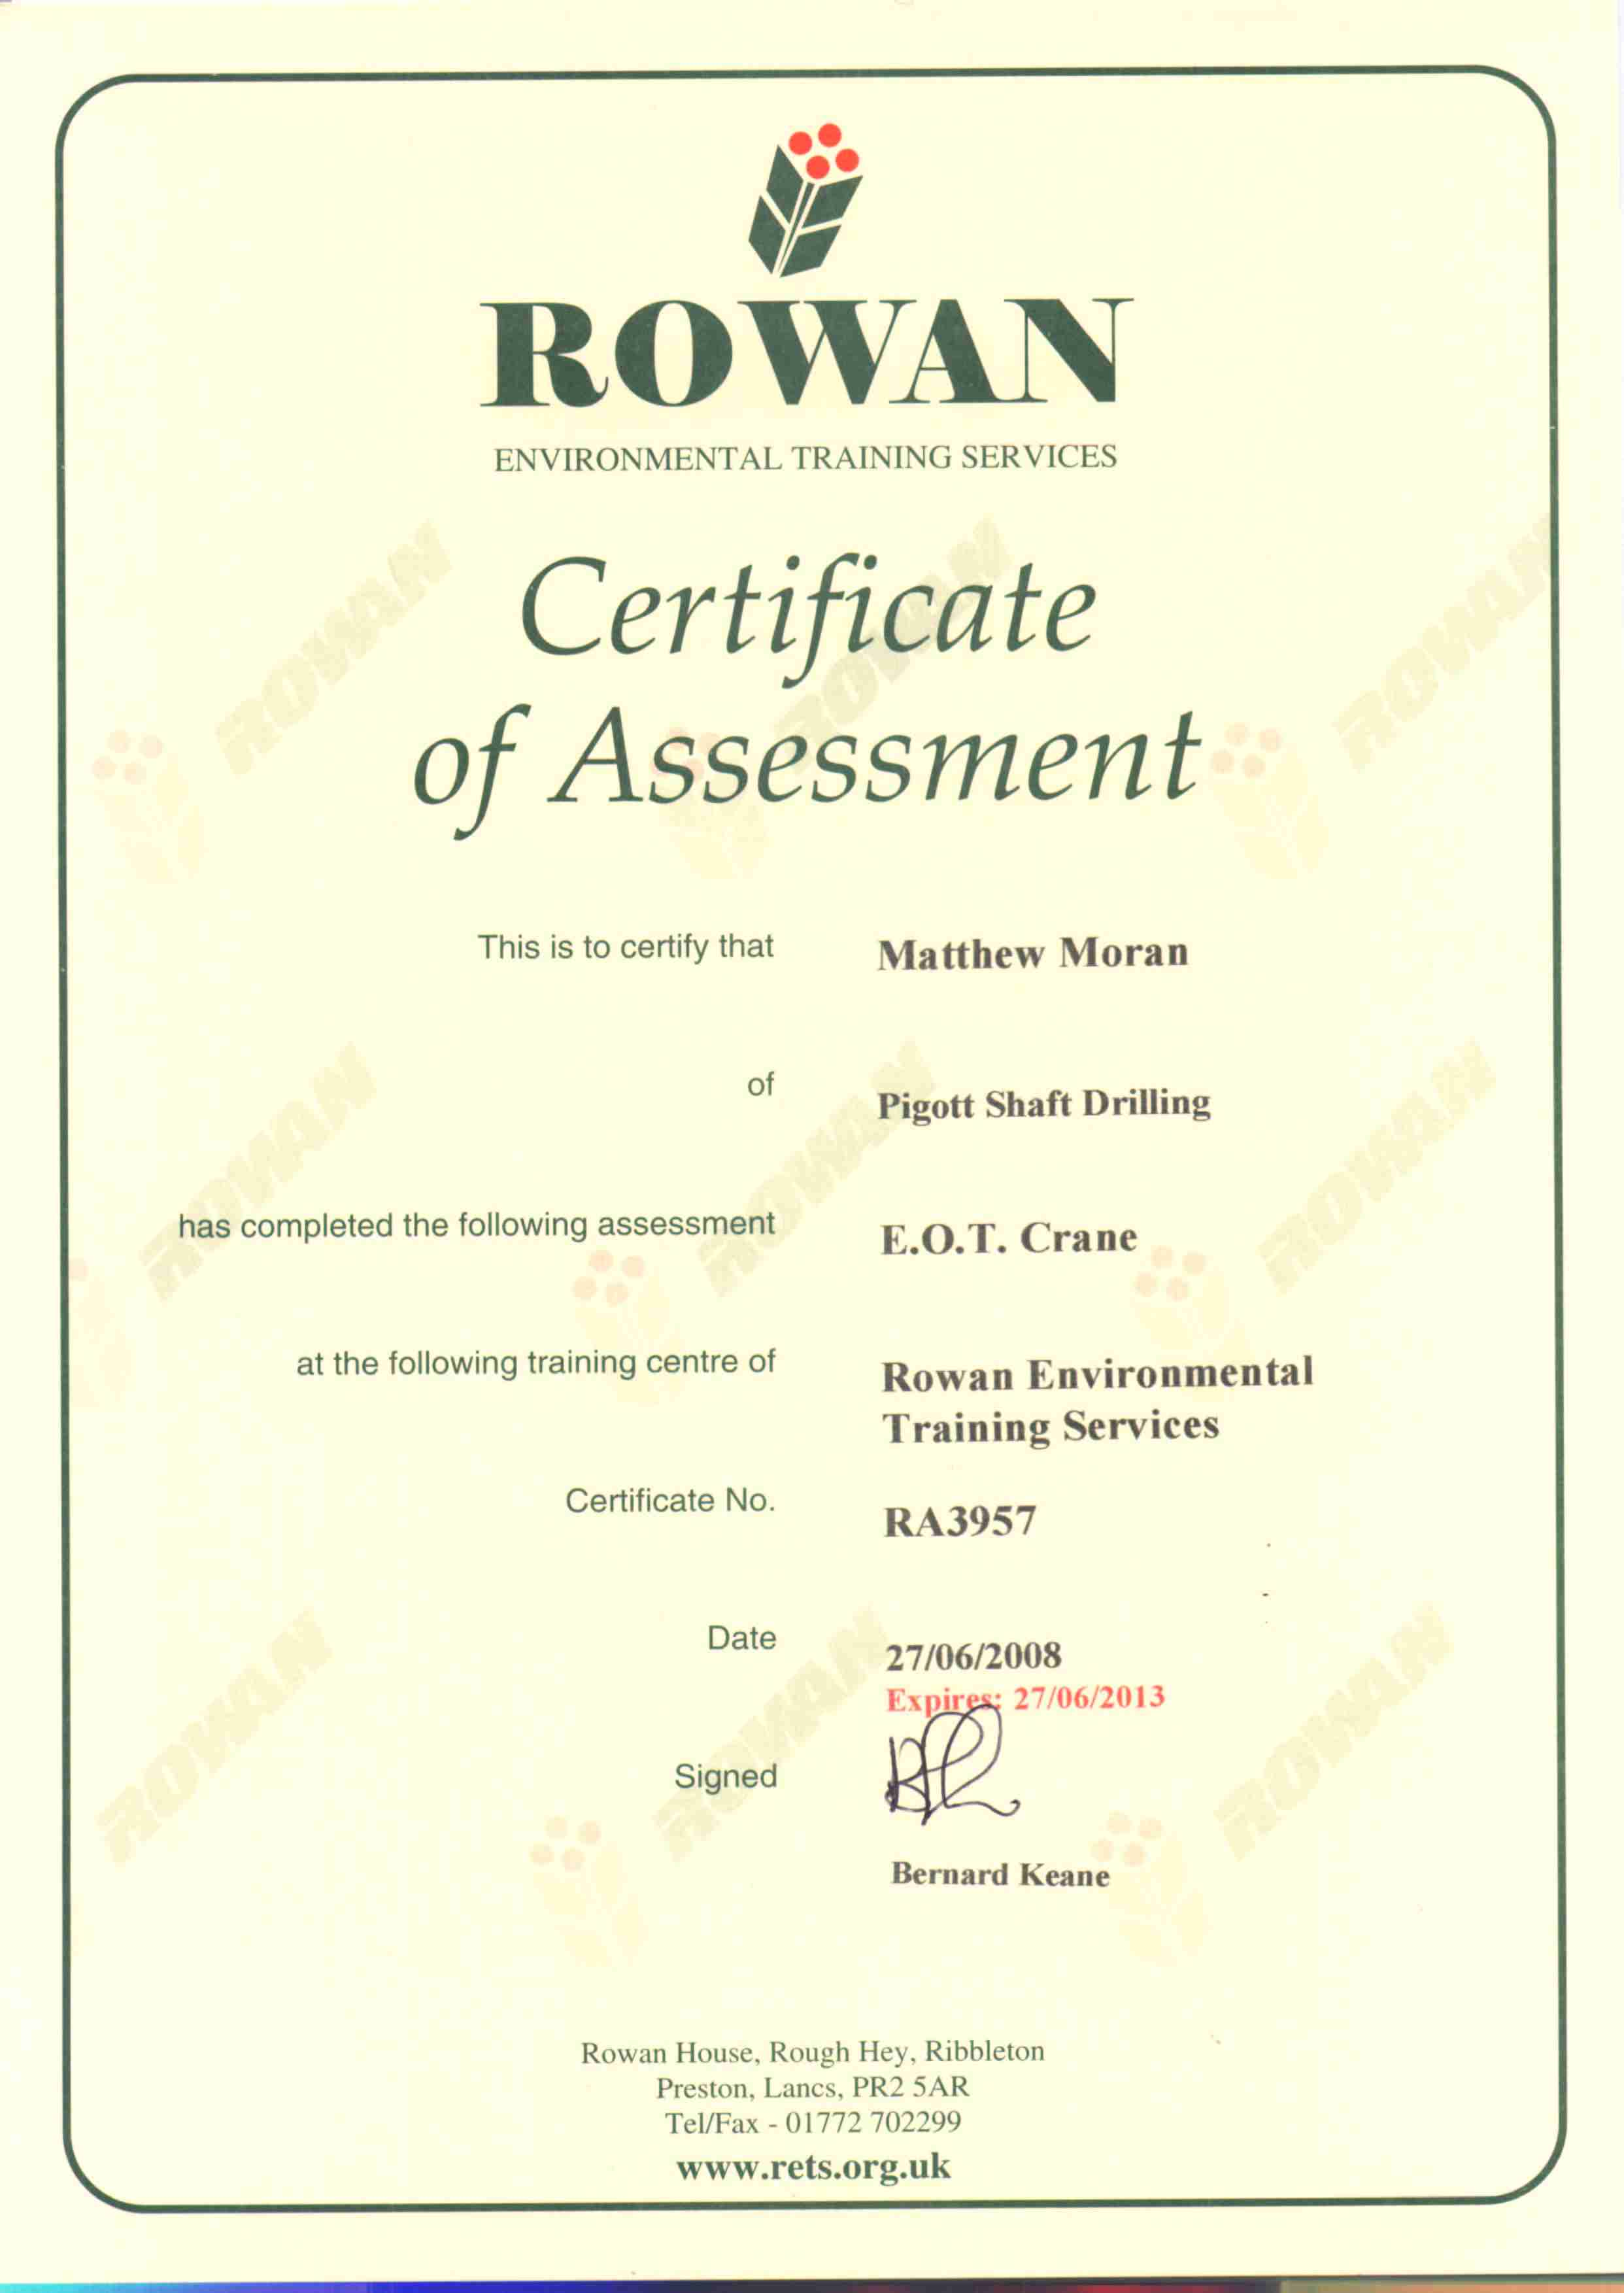 External Training Certificate